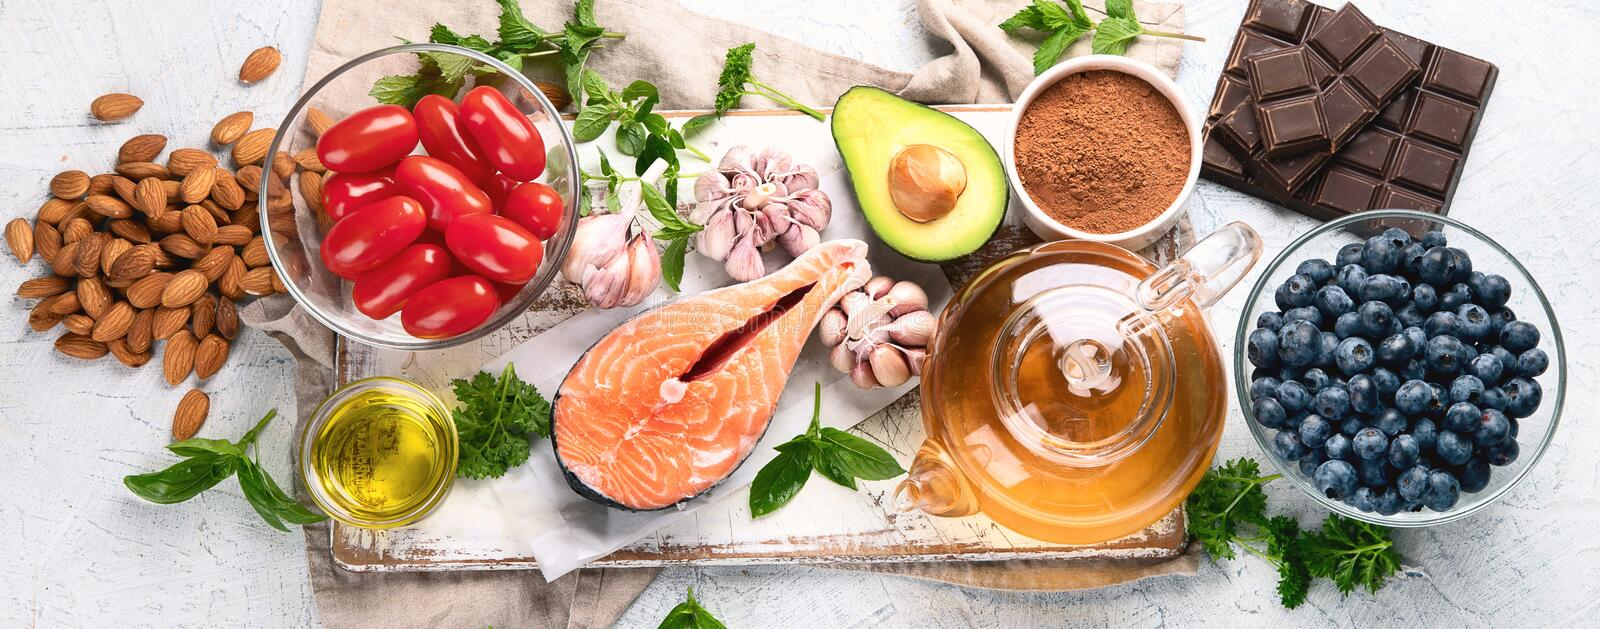 Anti-Aging foods. Foods high in antioxidants royalty free stock photos